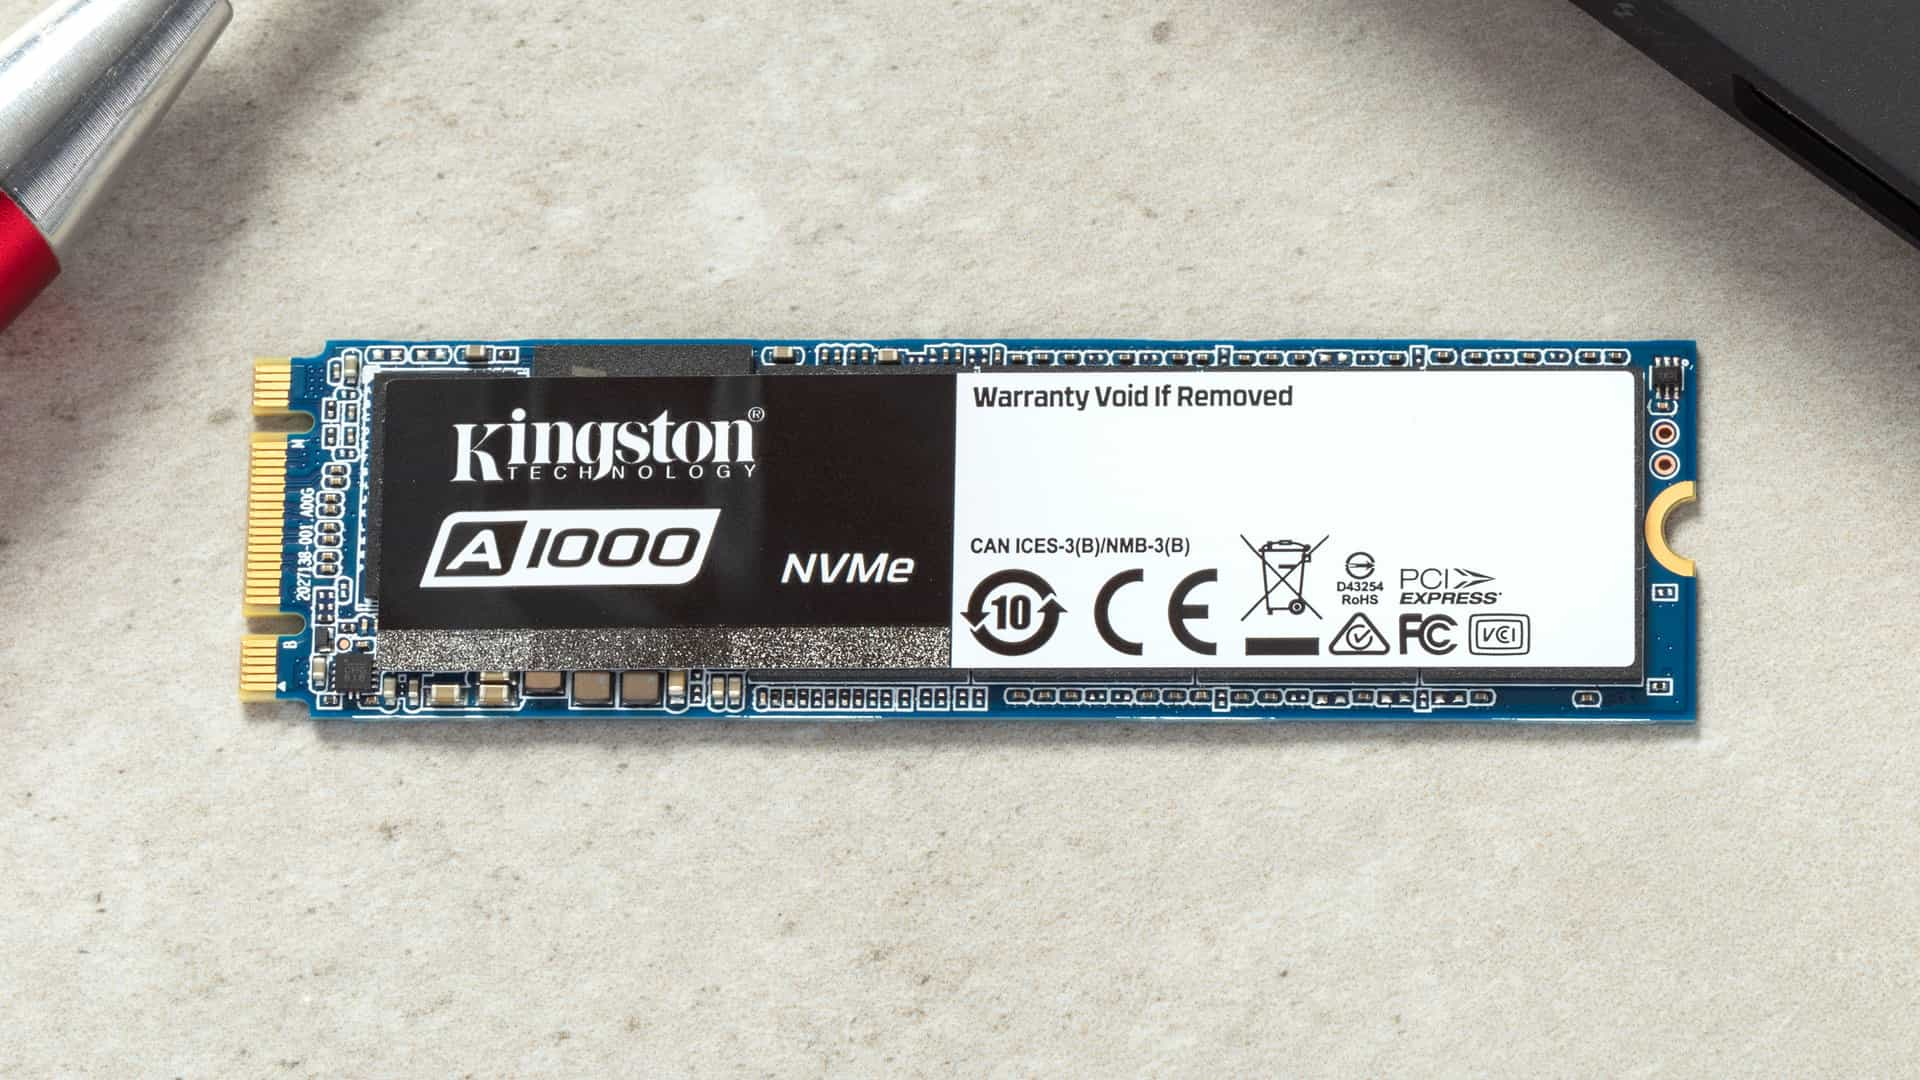 kingston-a1000-nvme-m2-ssd-modul-1600